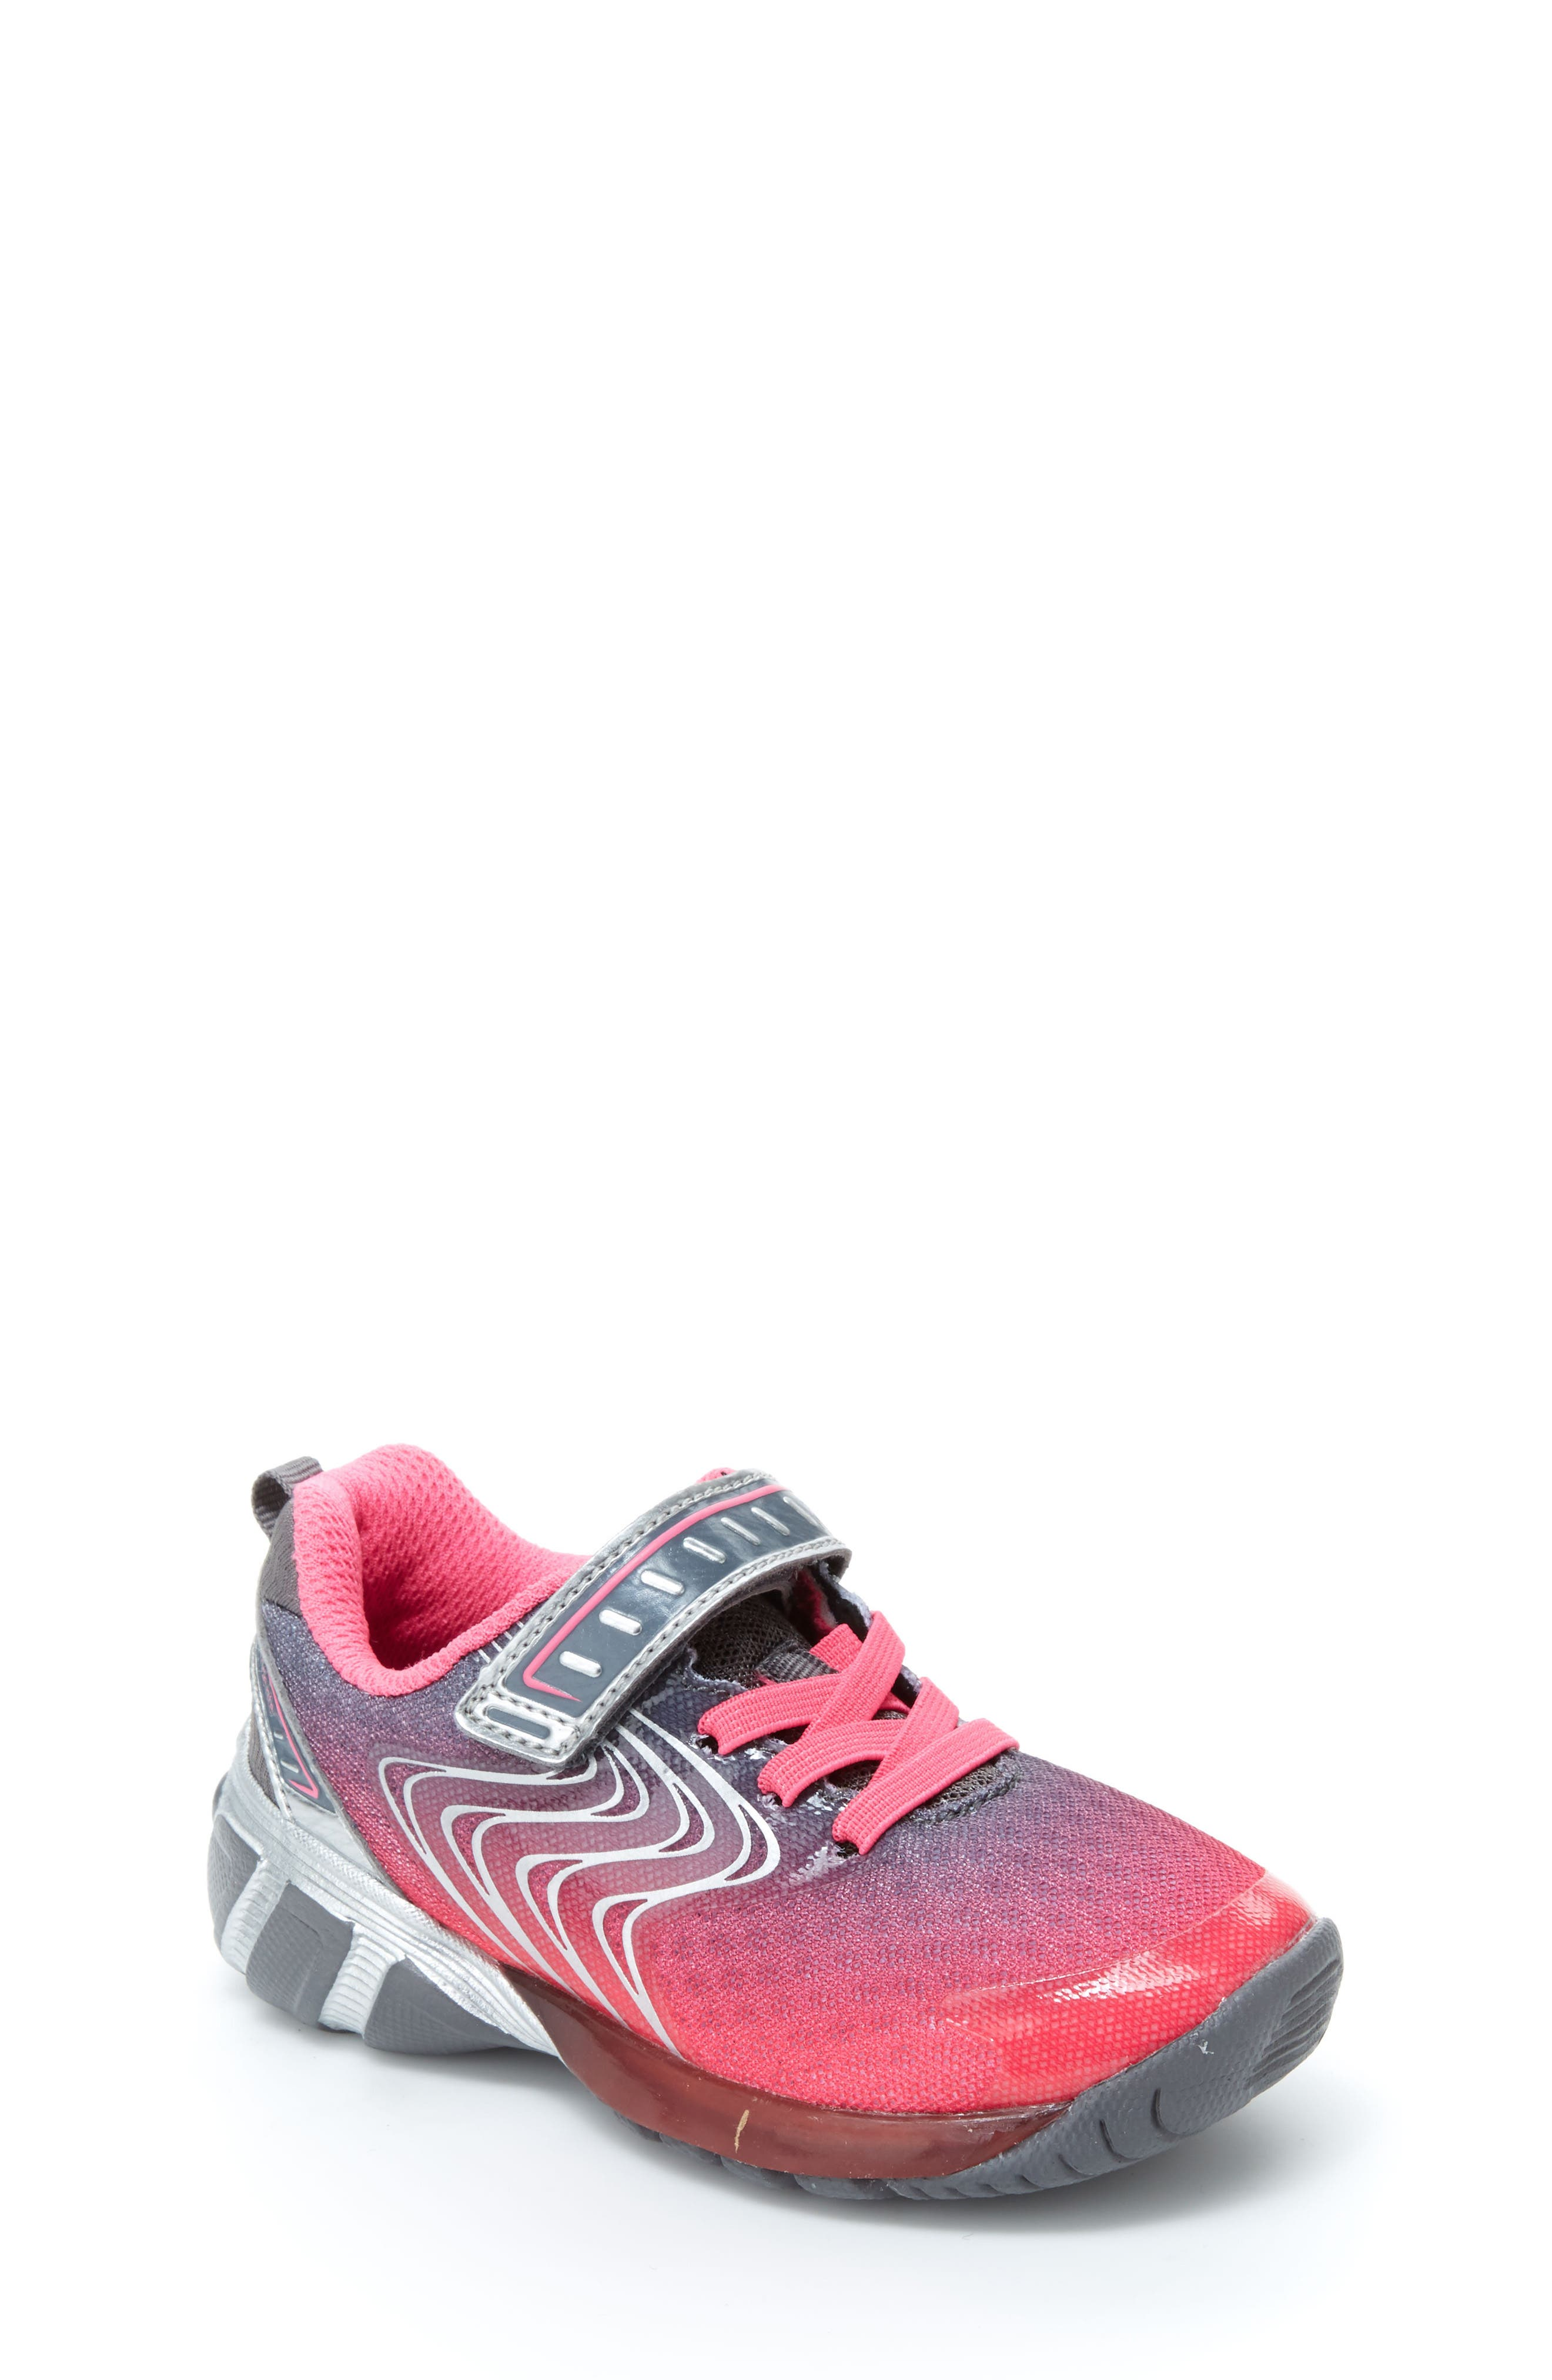 Lights Lux Light-Up Sneaker,                             Main thumbnail 1, color,                             PINK SYNTHETIC/ TEXTILE